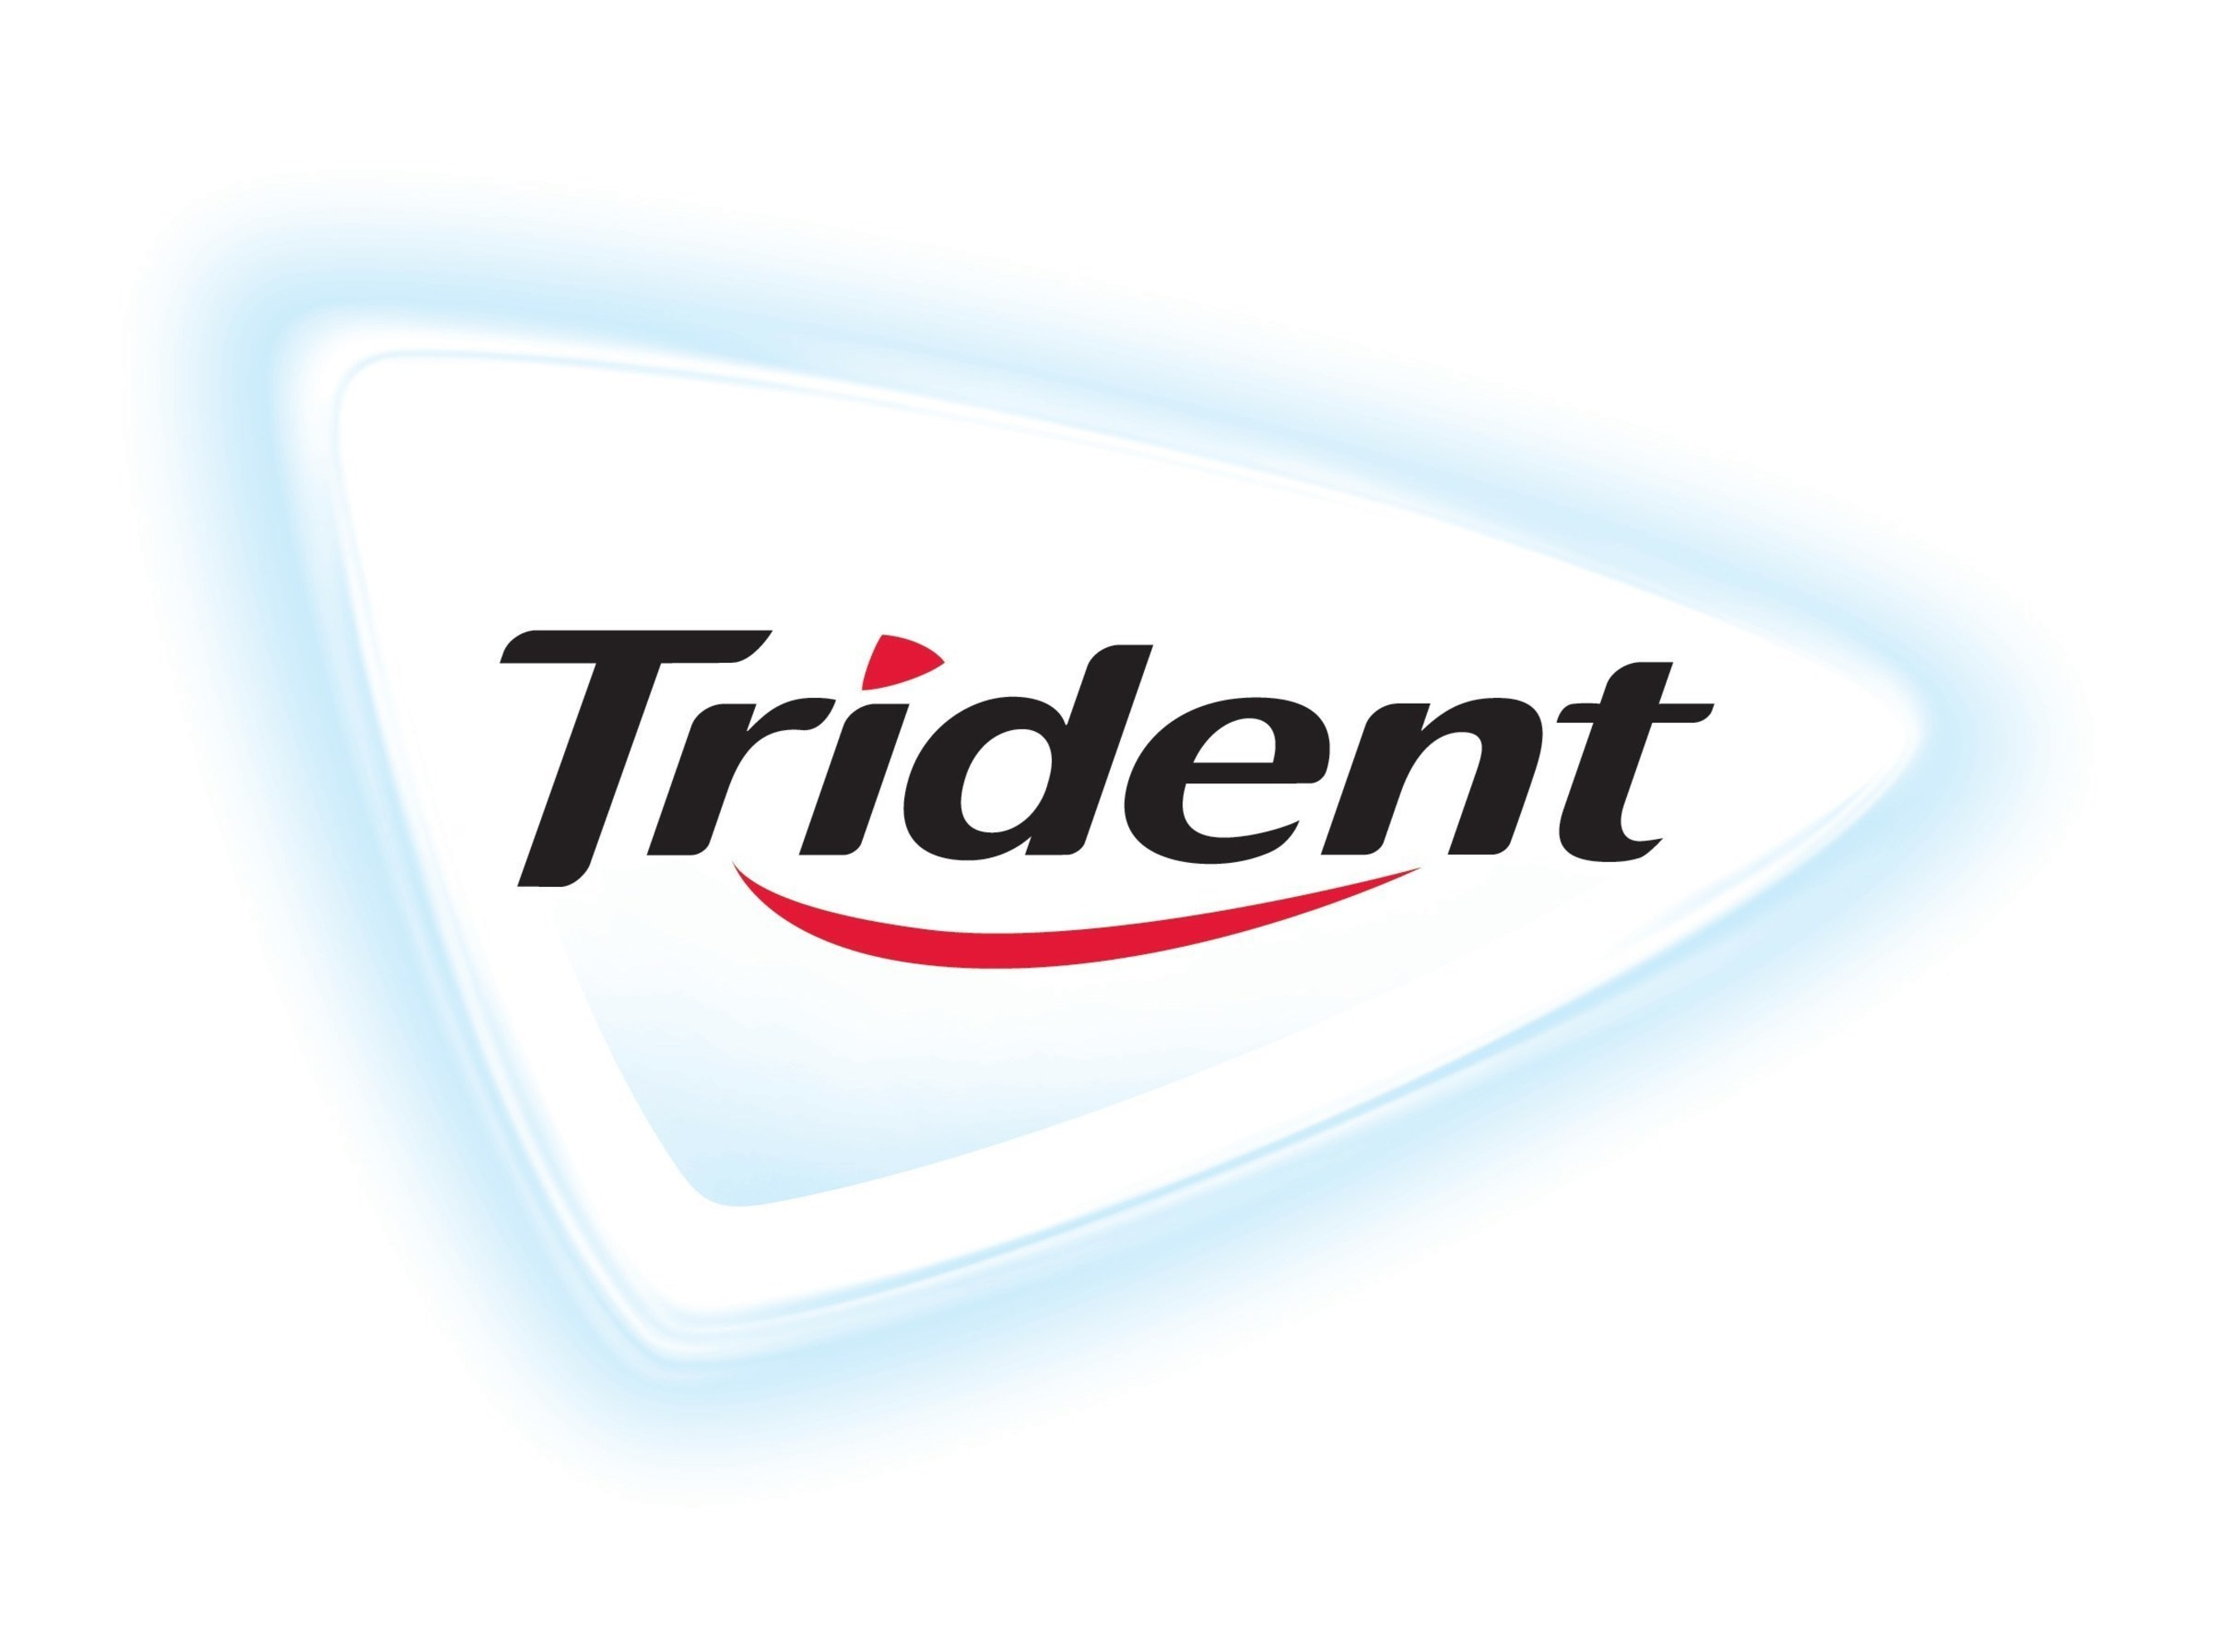 trident teams up with oral health america to spread smiles across rh prnewswire com trident gum logo history trident gum logo meaning